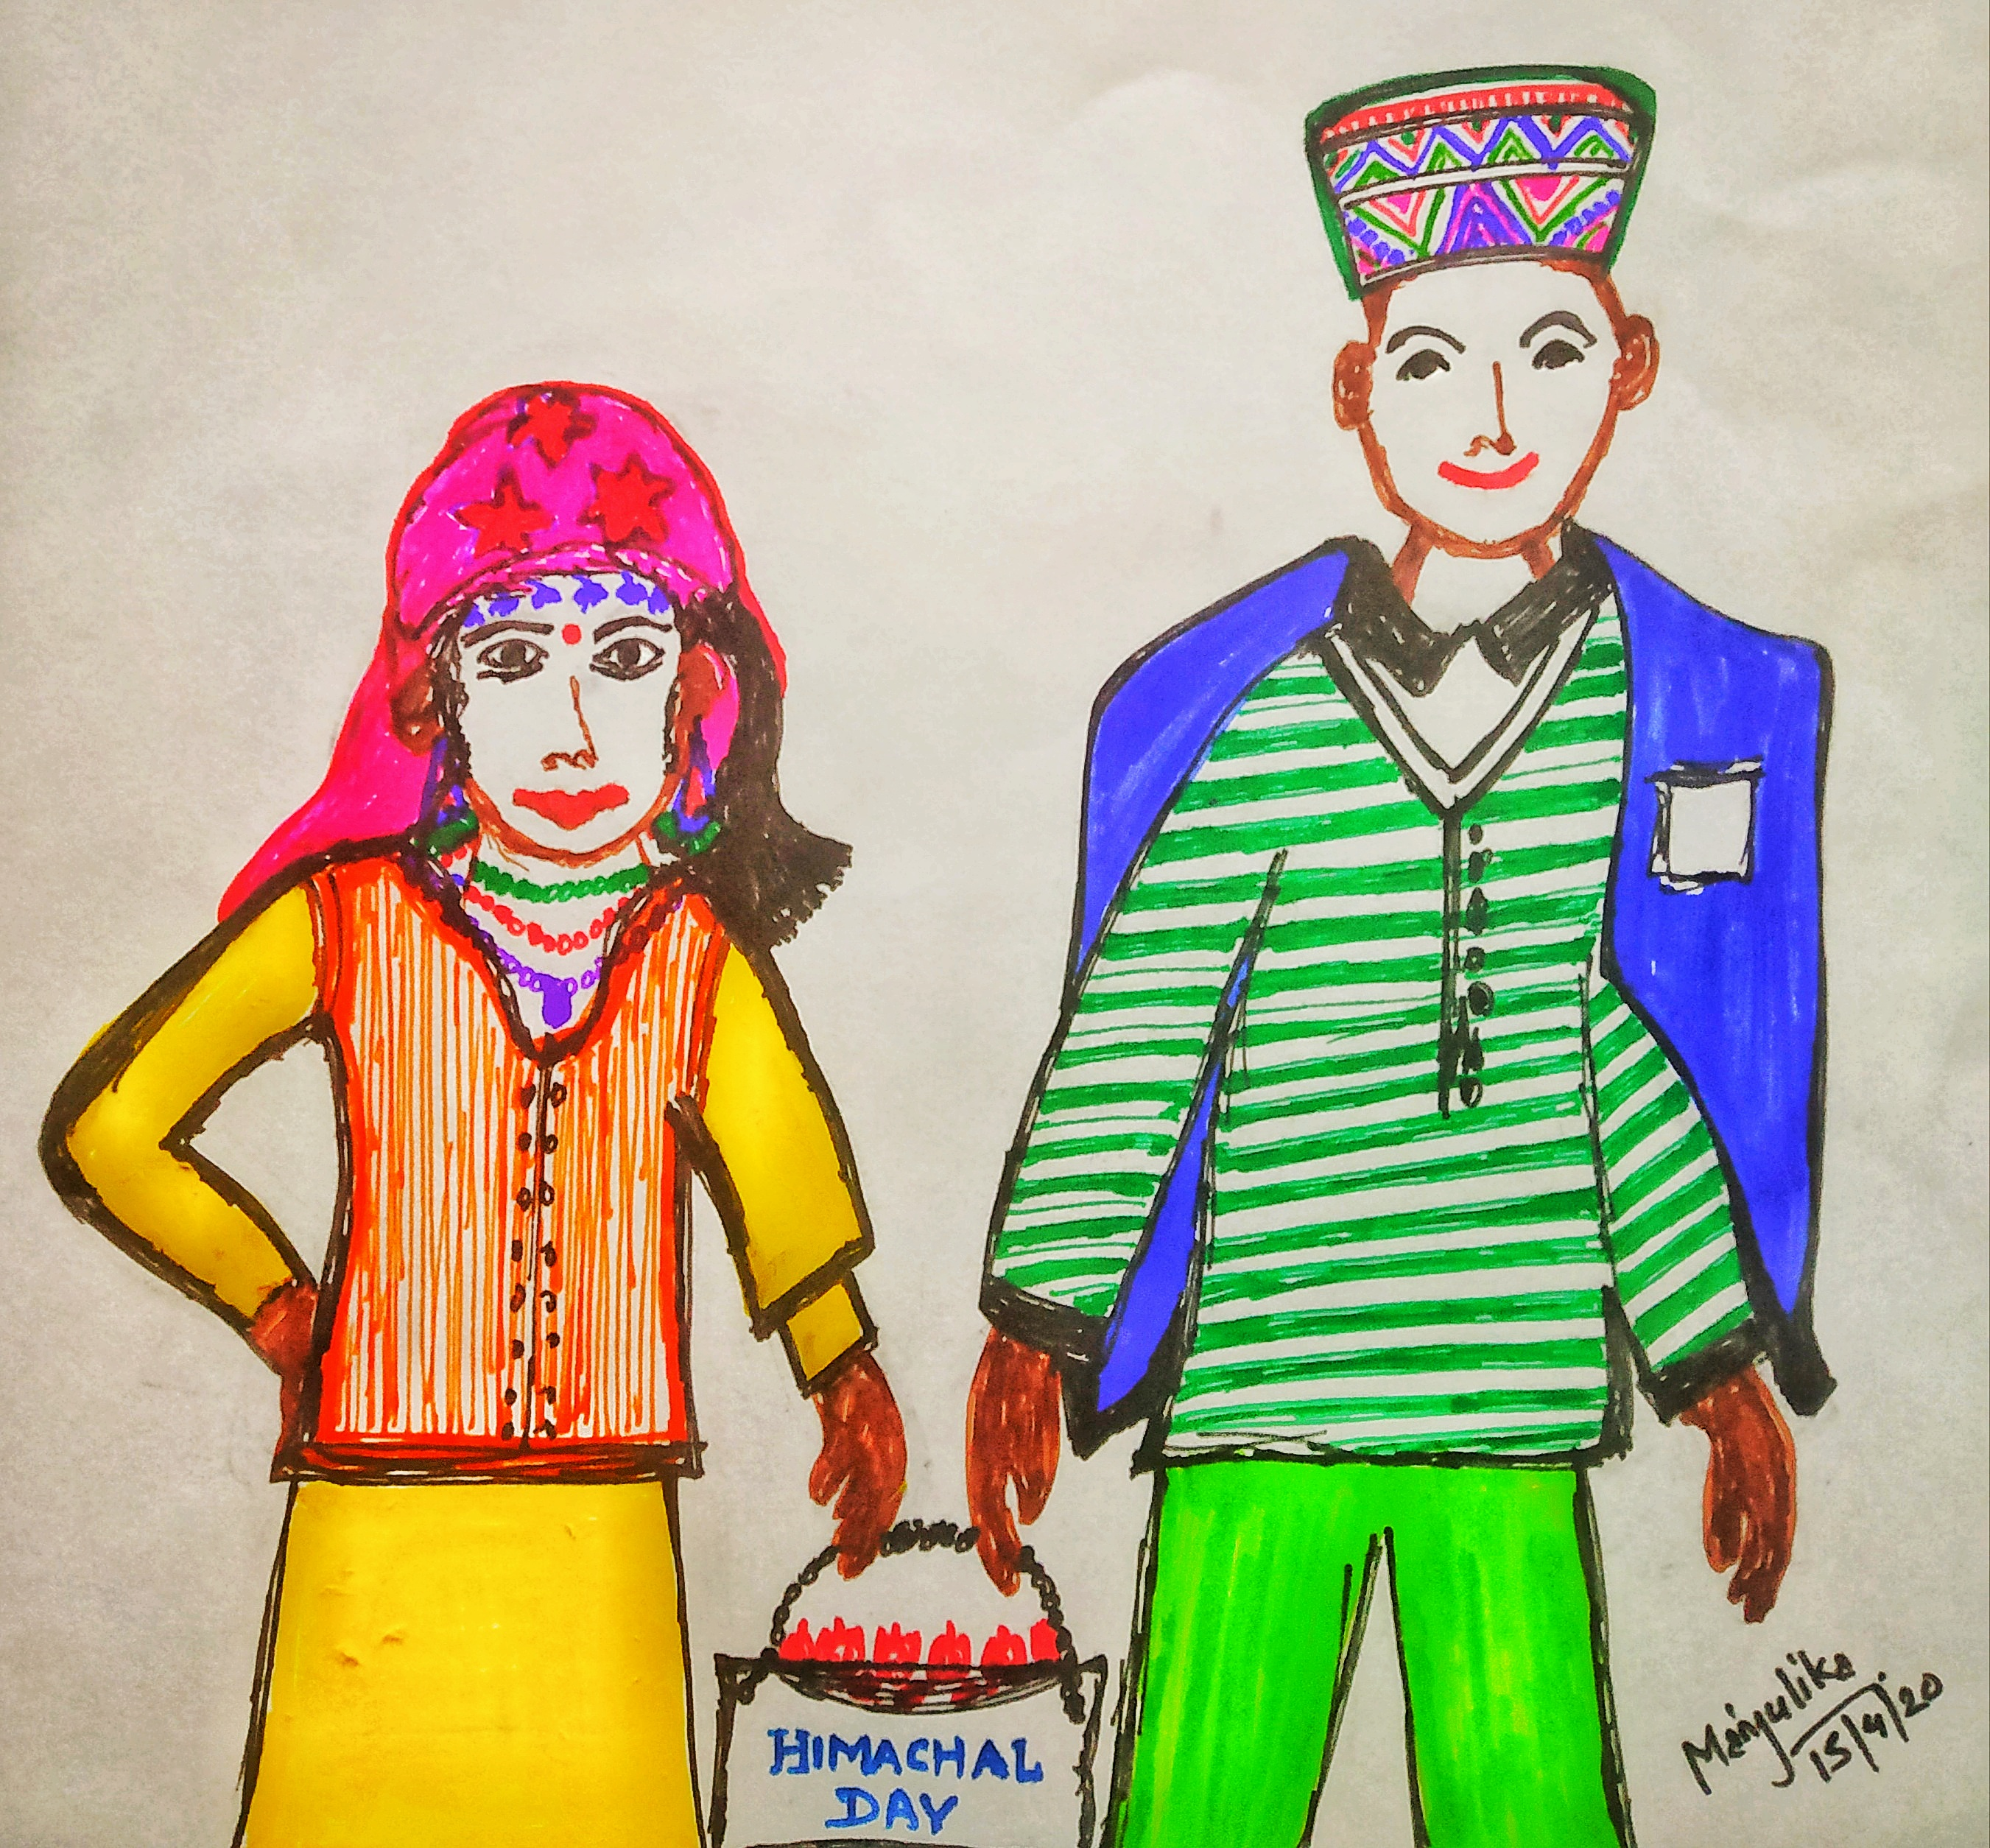 Himchali man and woman -Art work